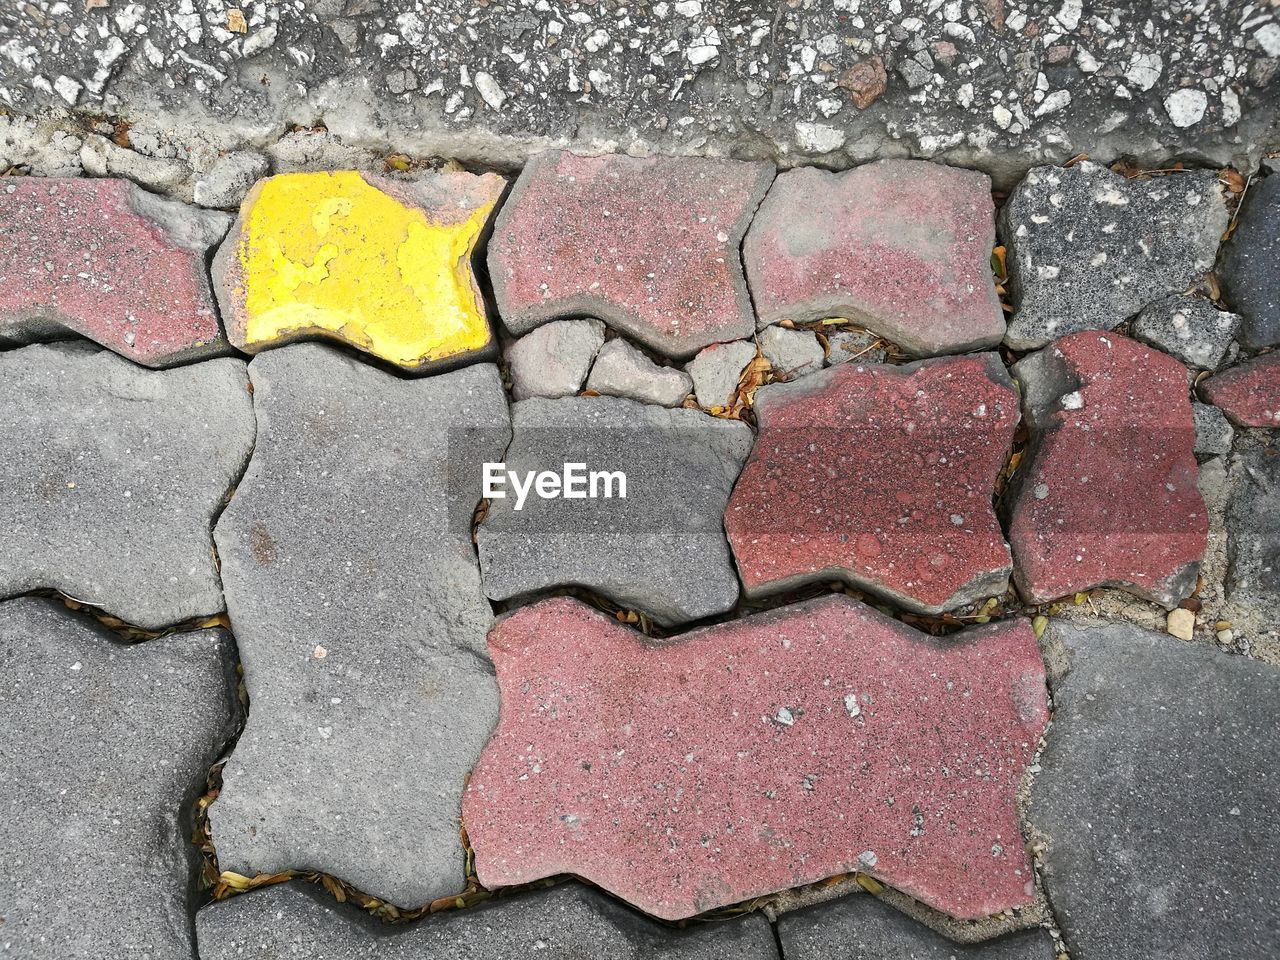 textured, no people, pattern, street, backgrounds, cracked, yellow, road, full frame, day, outdoors, close-up